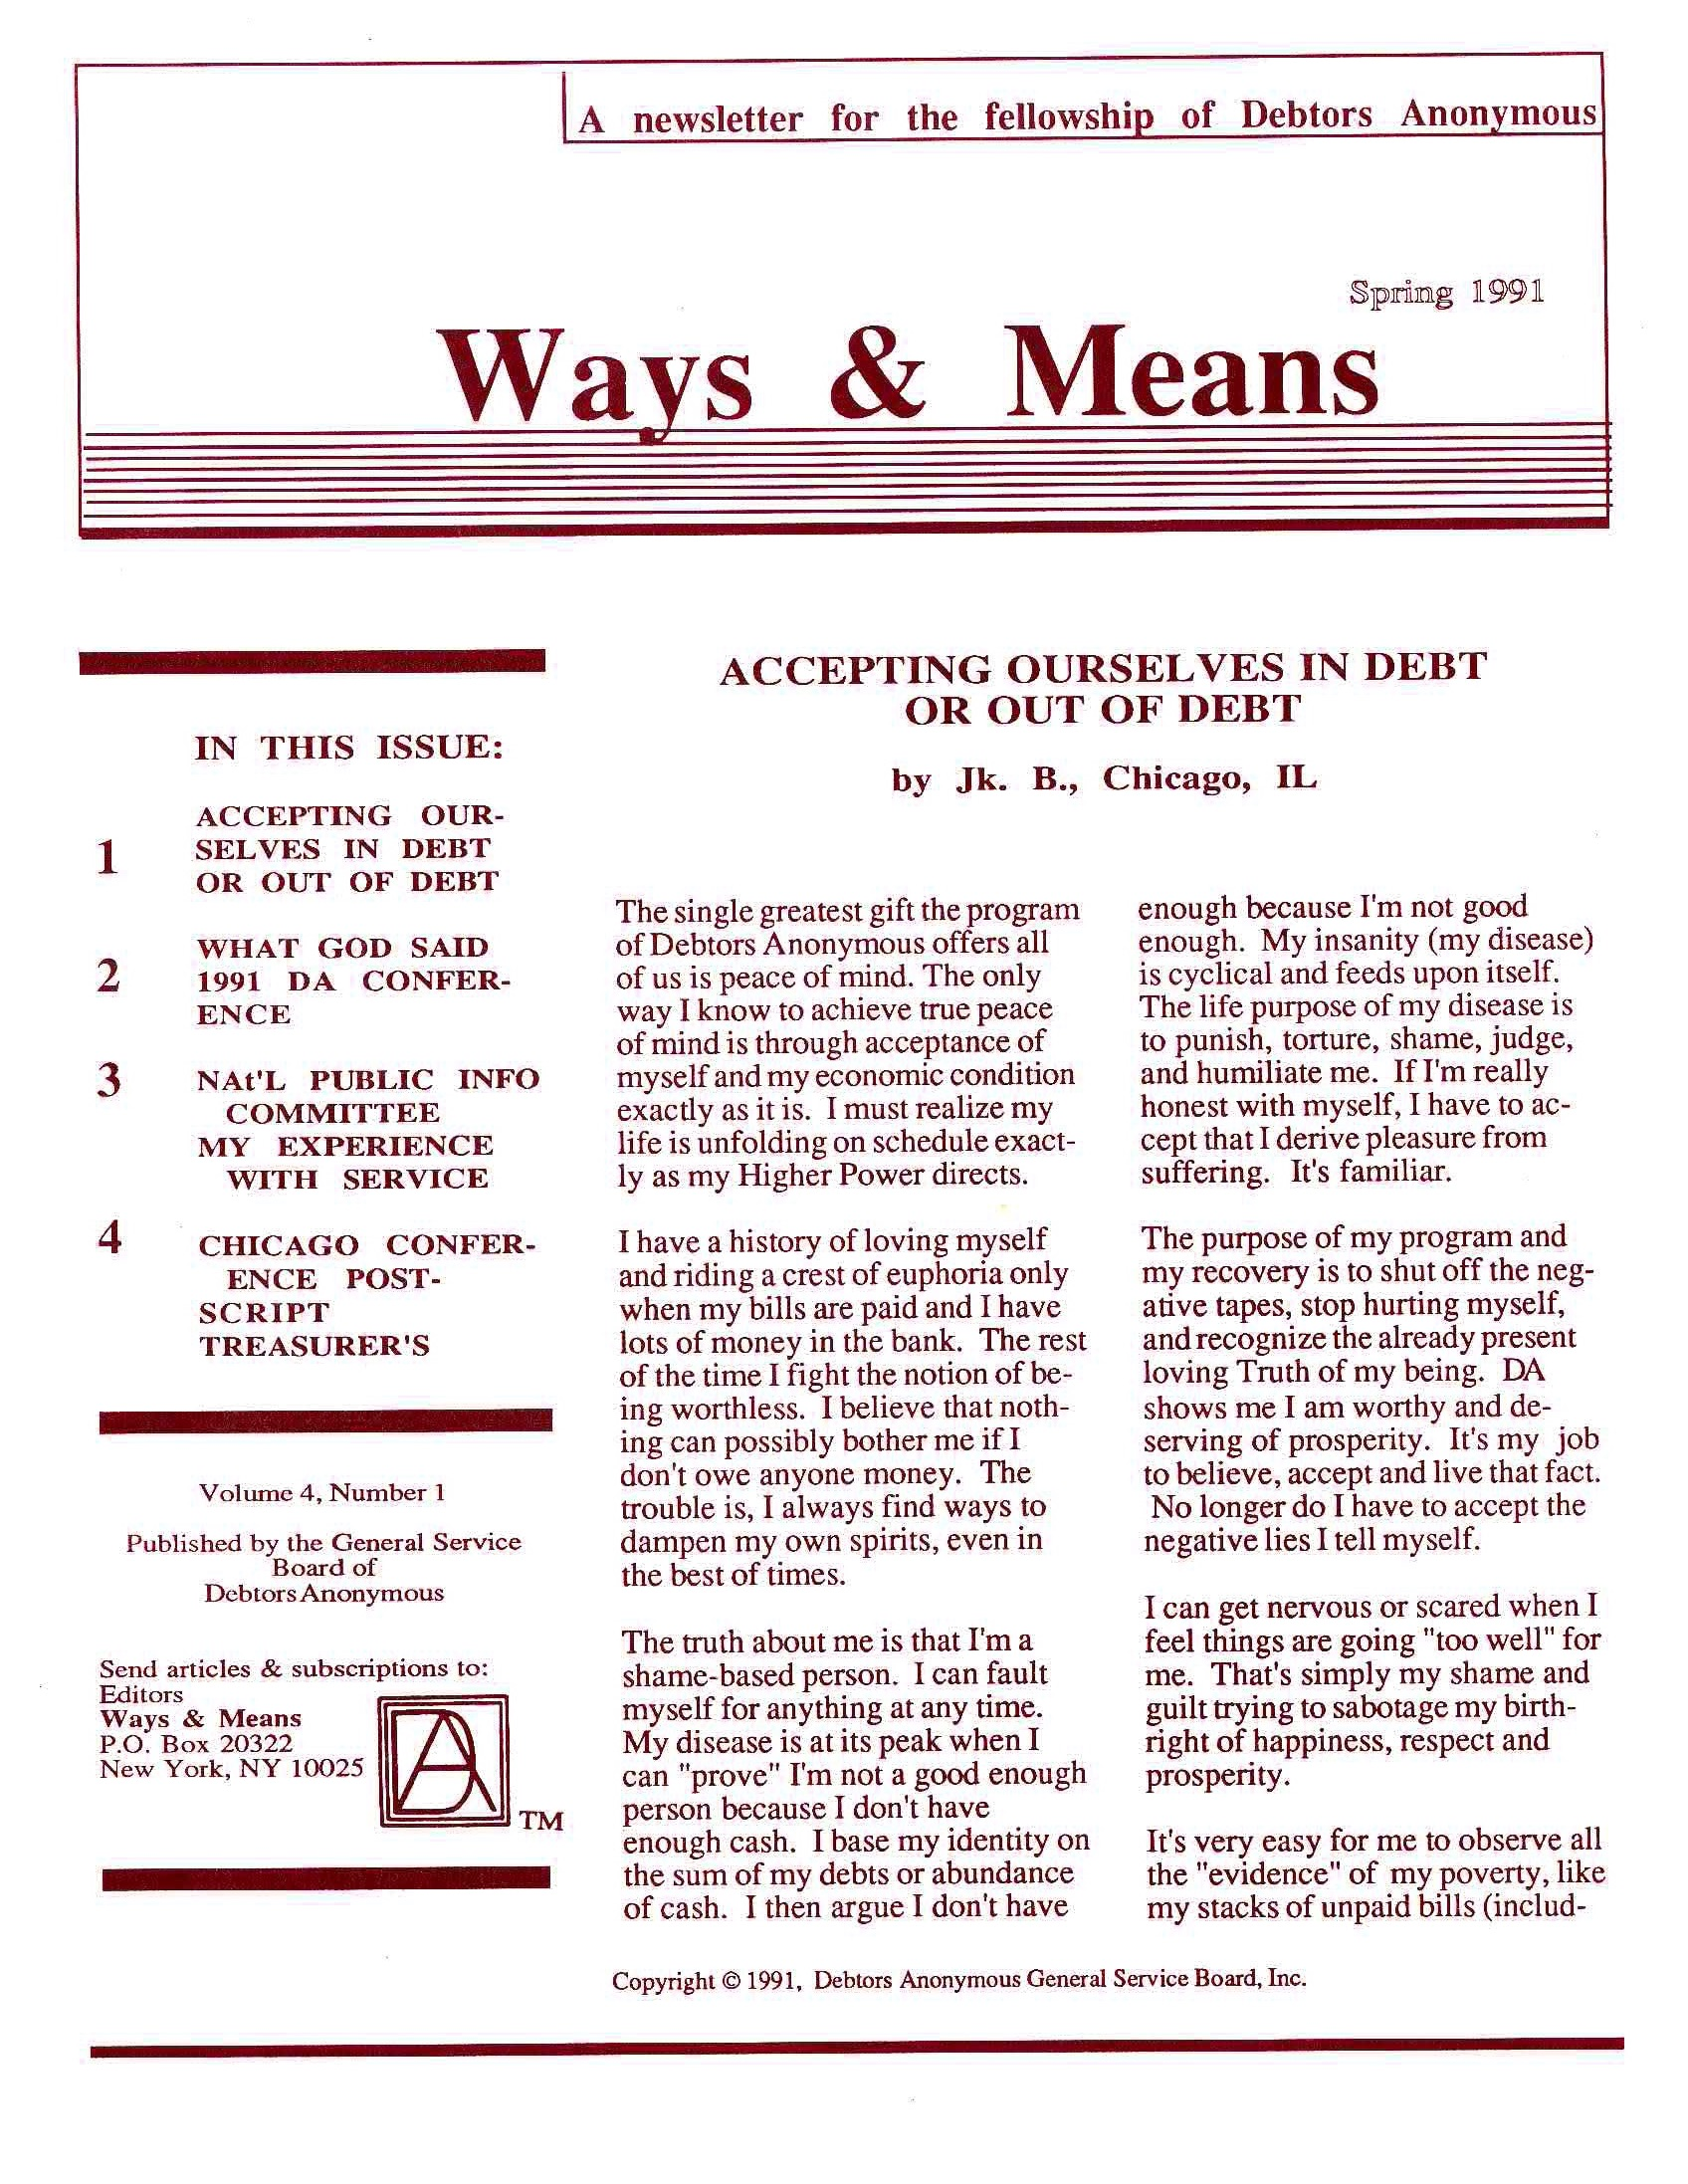 Ways & Means 2nd QTR 1991